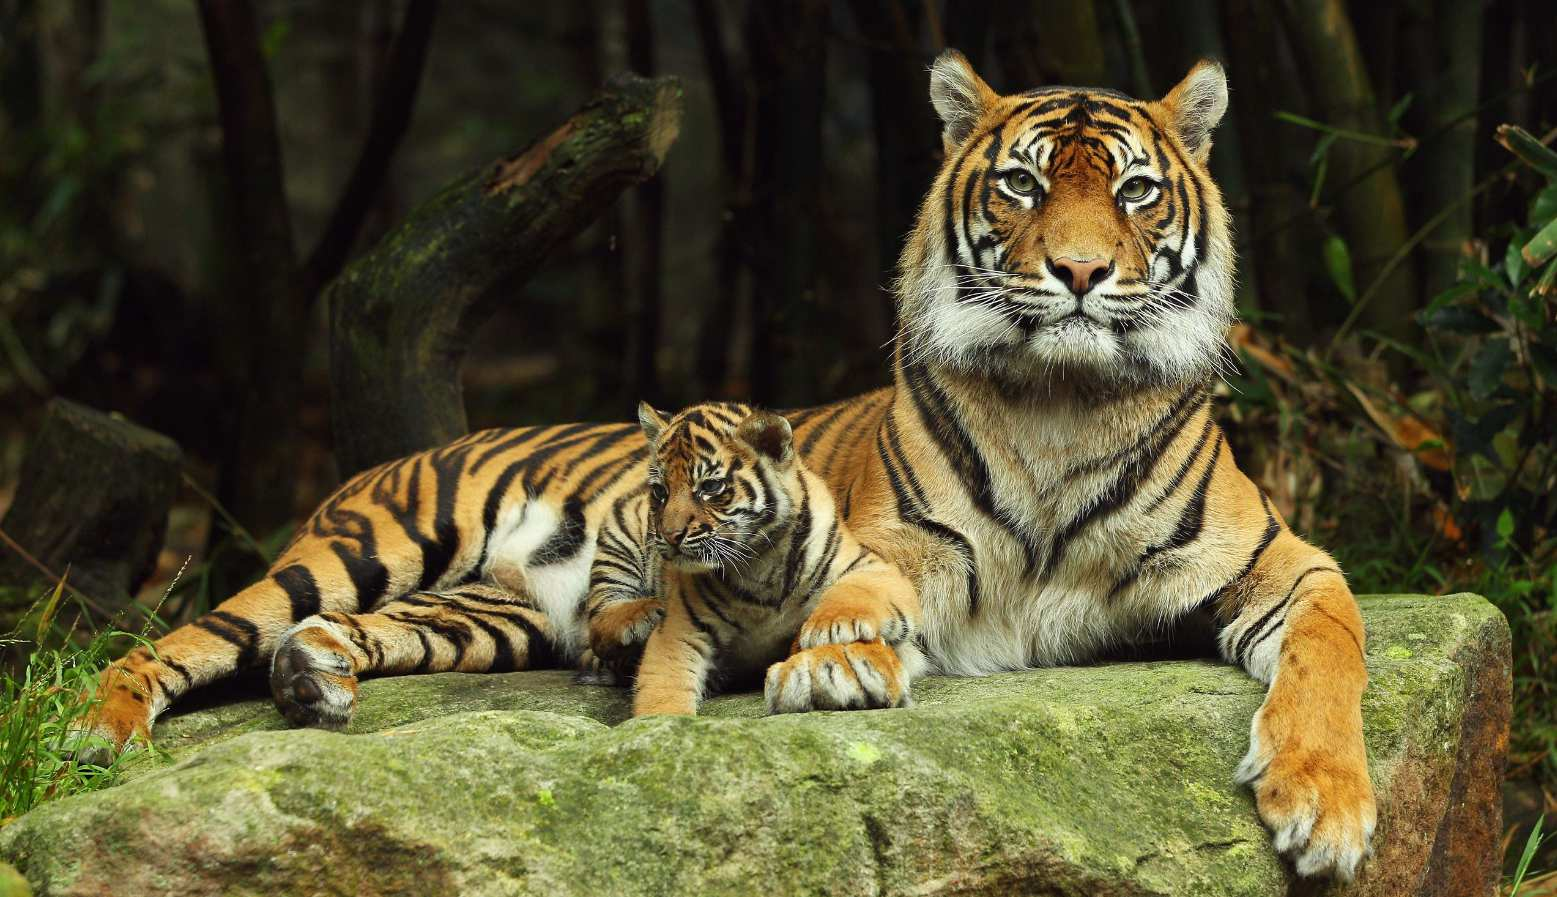 32/fc/international-tigers-day-only-3200-wild-tigers-left.jpg